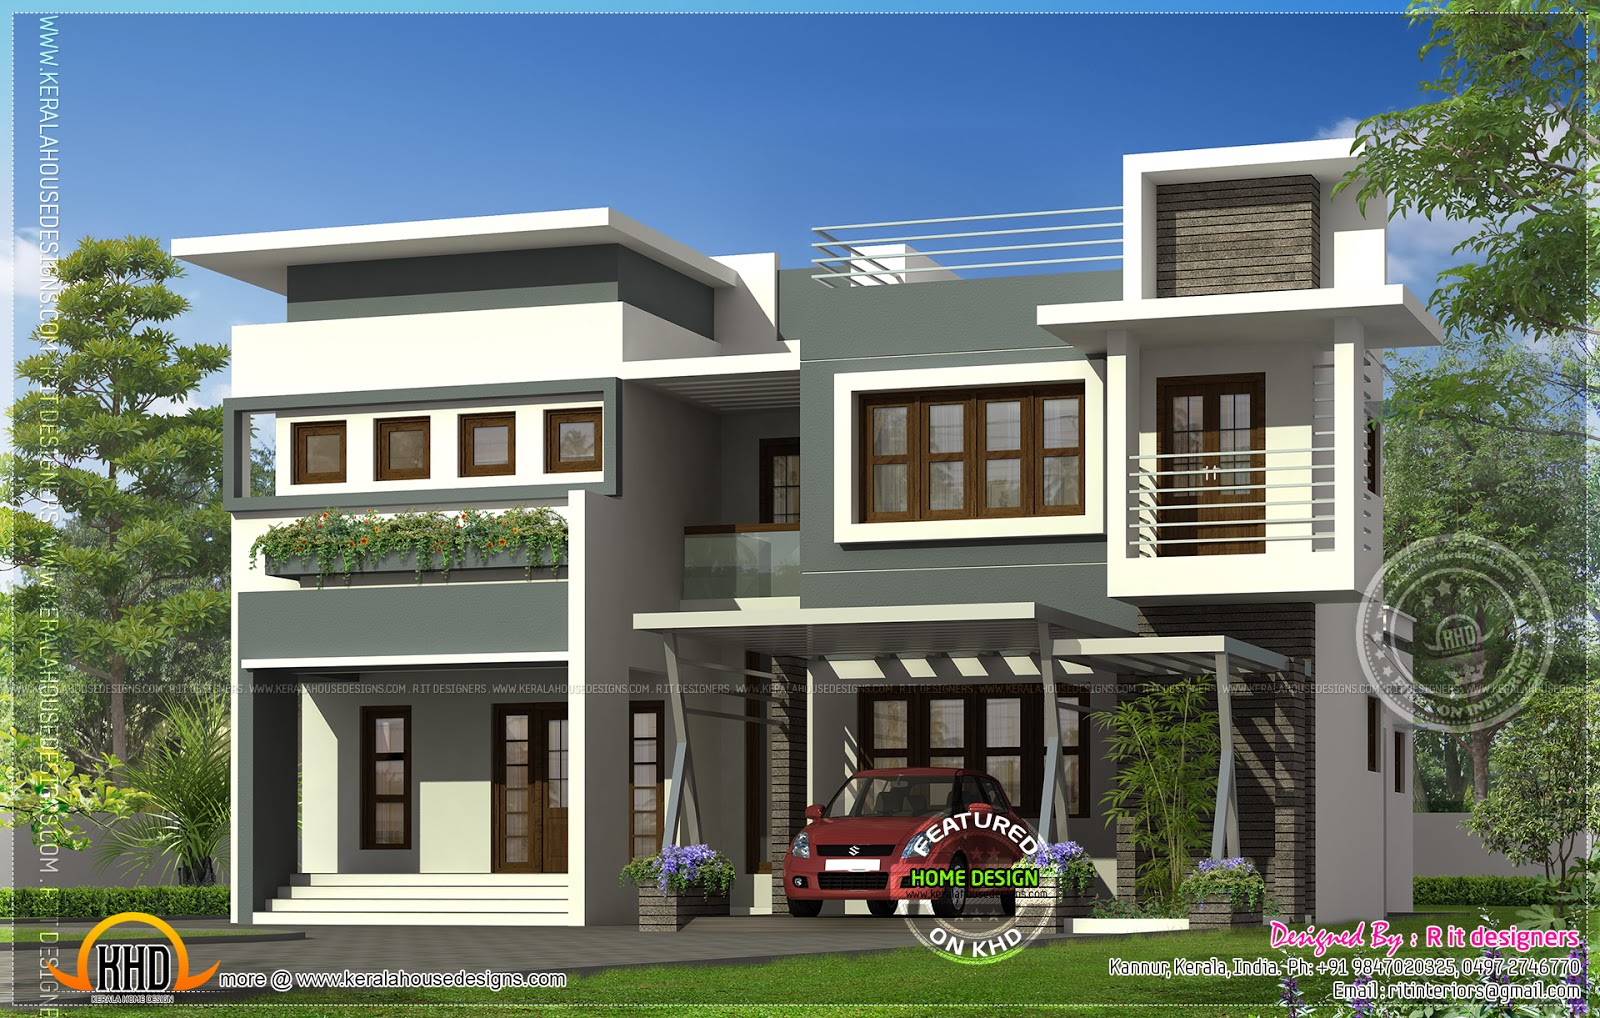 Modern contemporary residence design kerala home design and floor plans - Modern design home ...